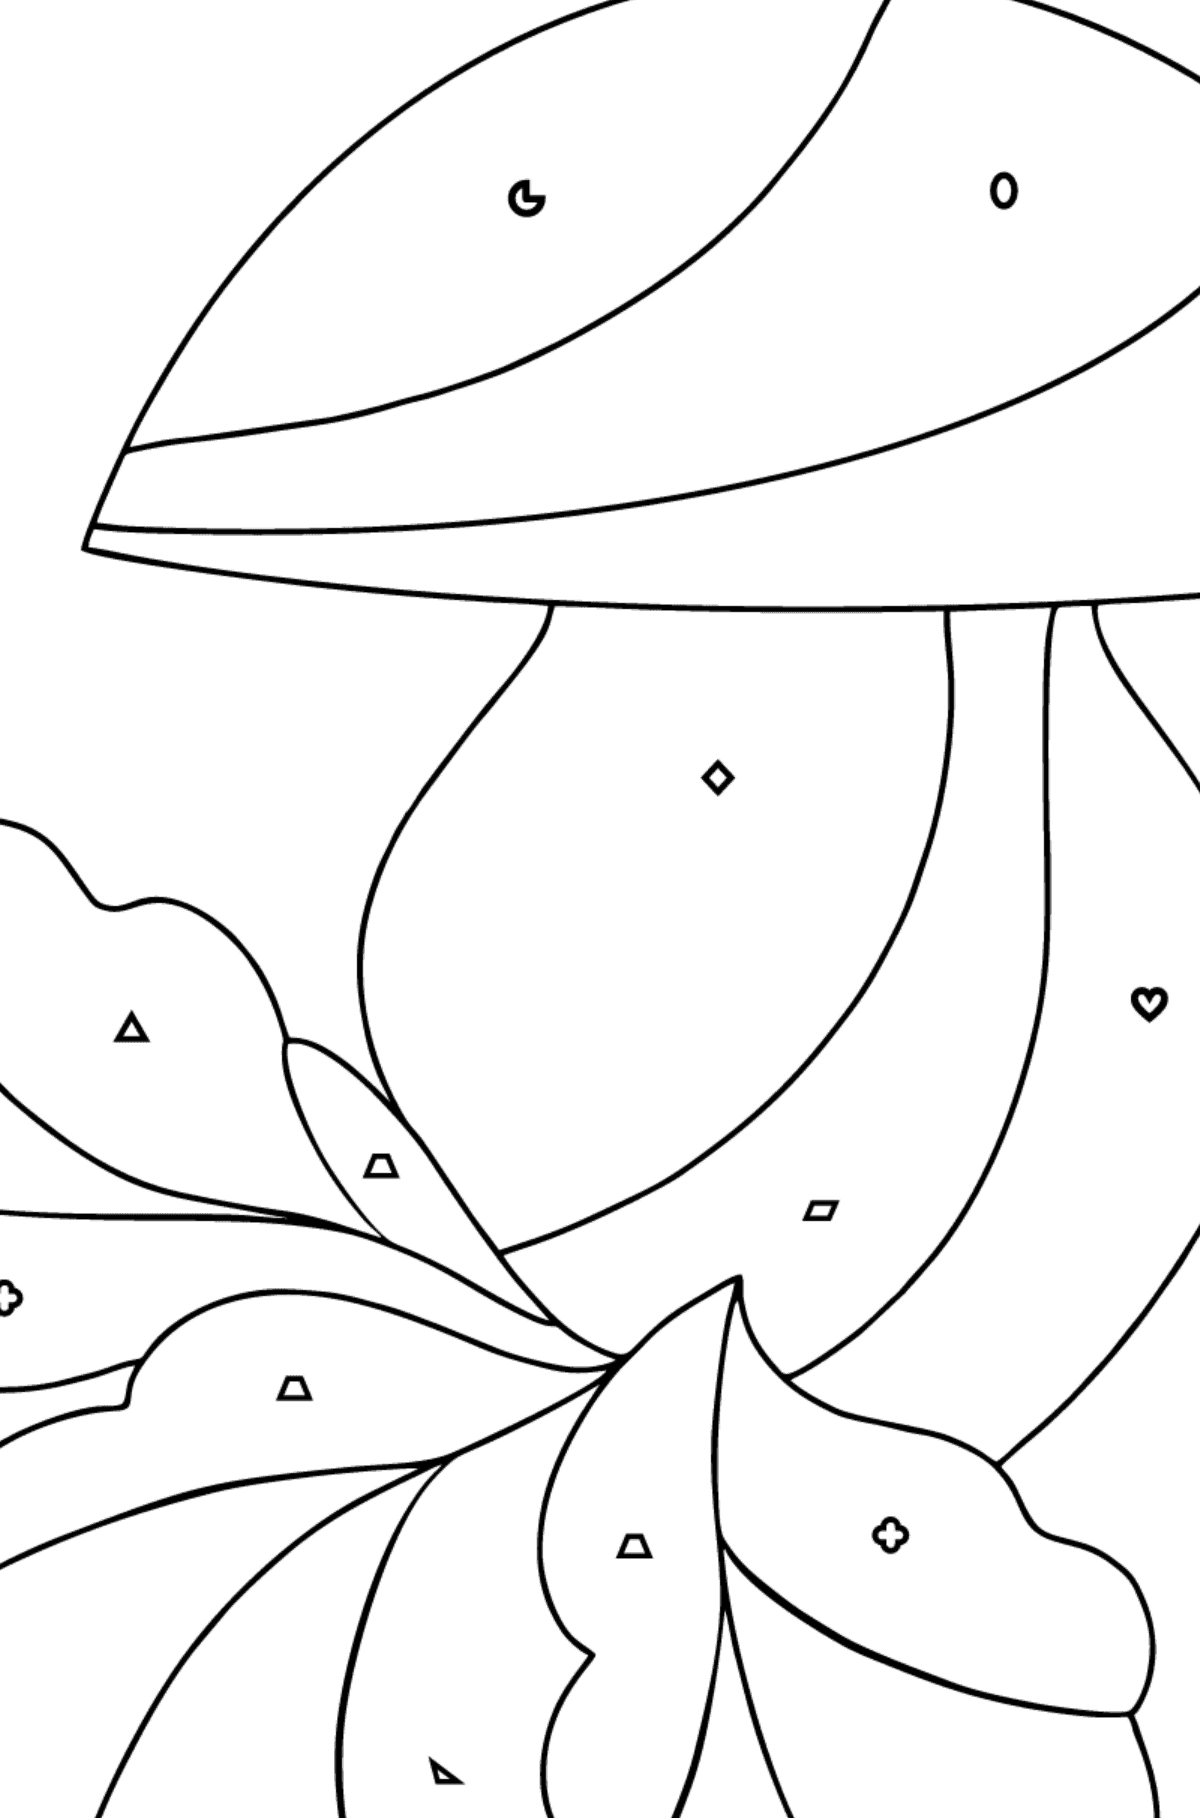 Autumn Coloring Page - Mushroom Harvest Time for Kids  - Color by Geometric Shapes